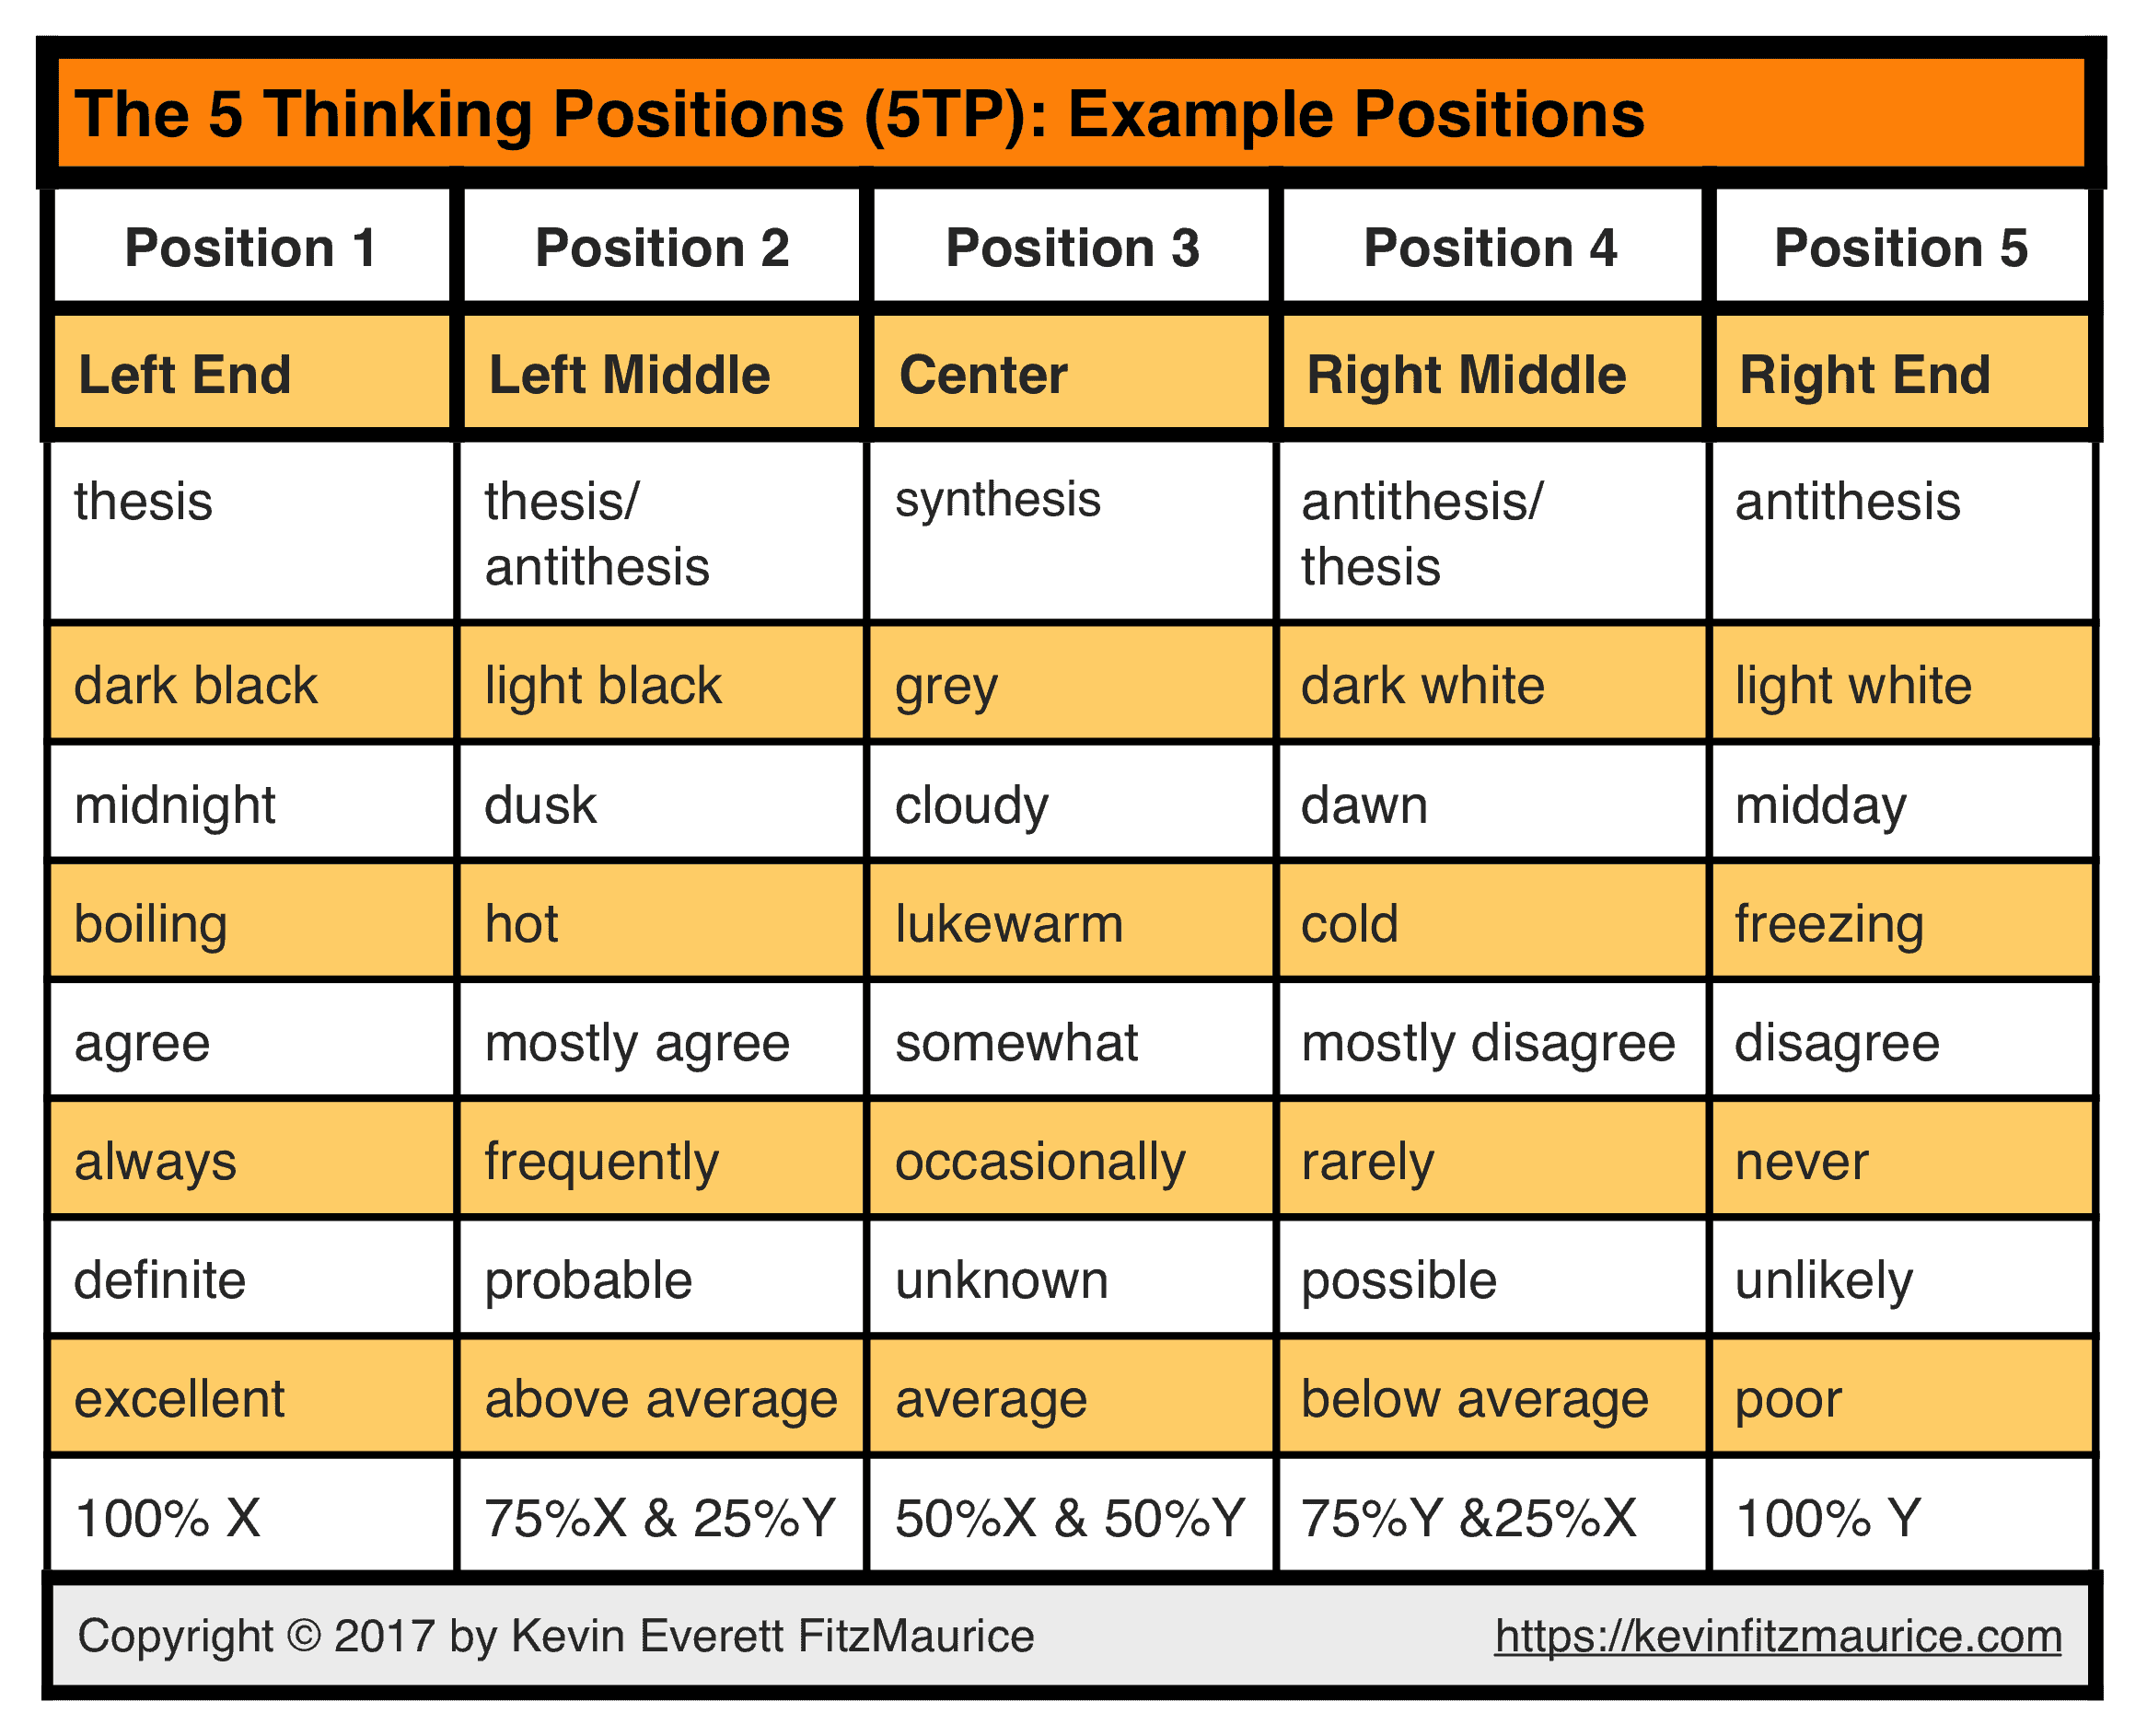 5 Thinking Positions Example Positions Table